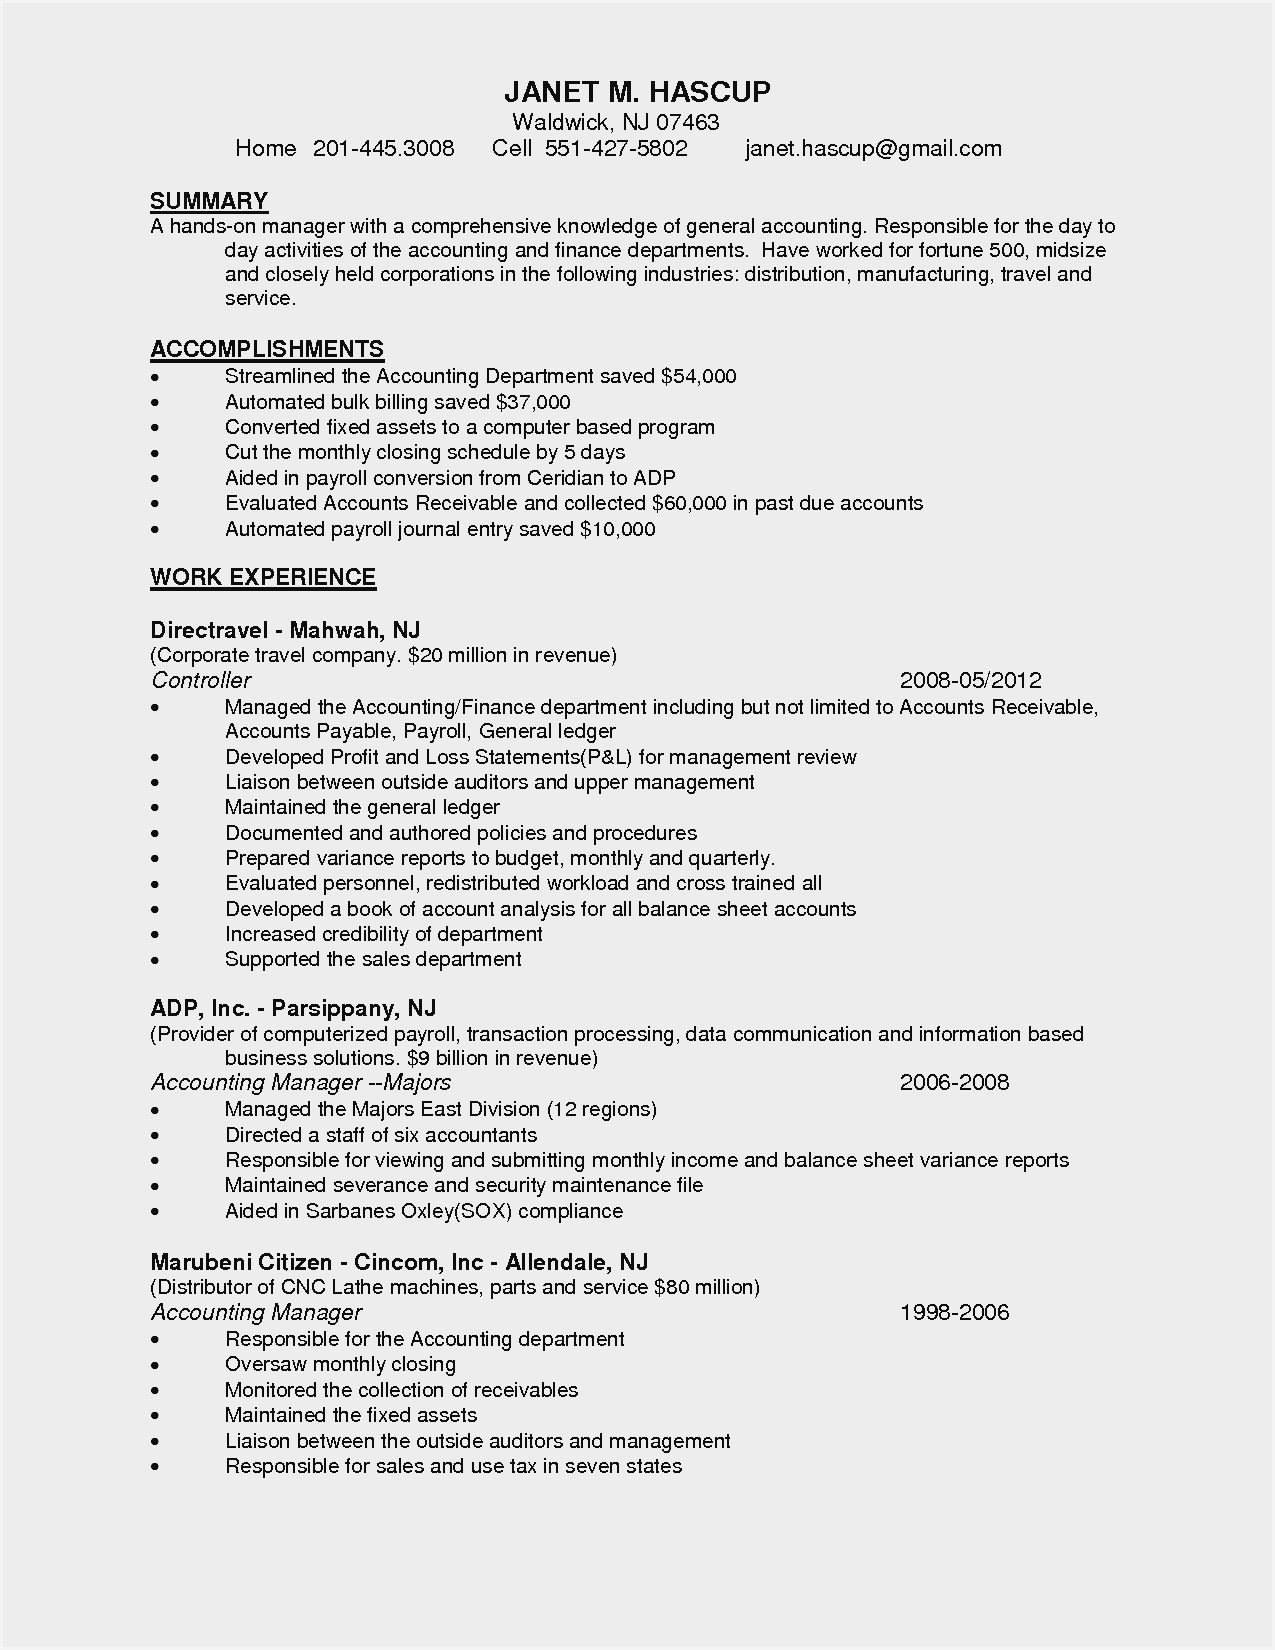 resume samples for accounts receivable manager sample college examples students graduate Resume Accounts Receivable Manager Resume